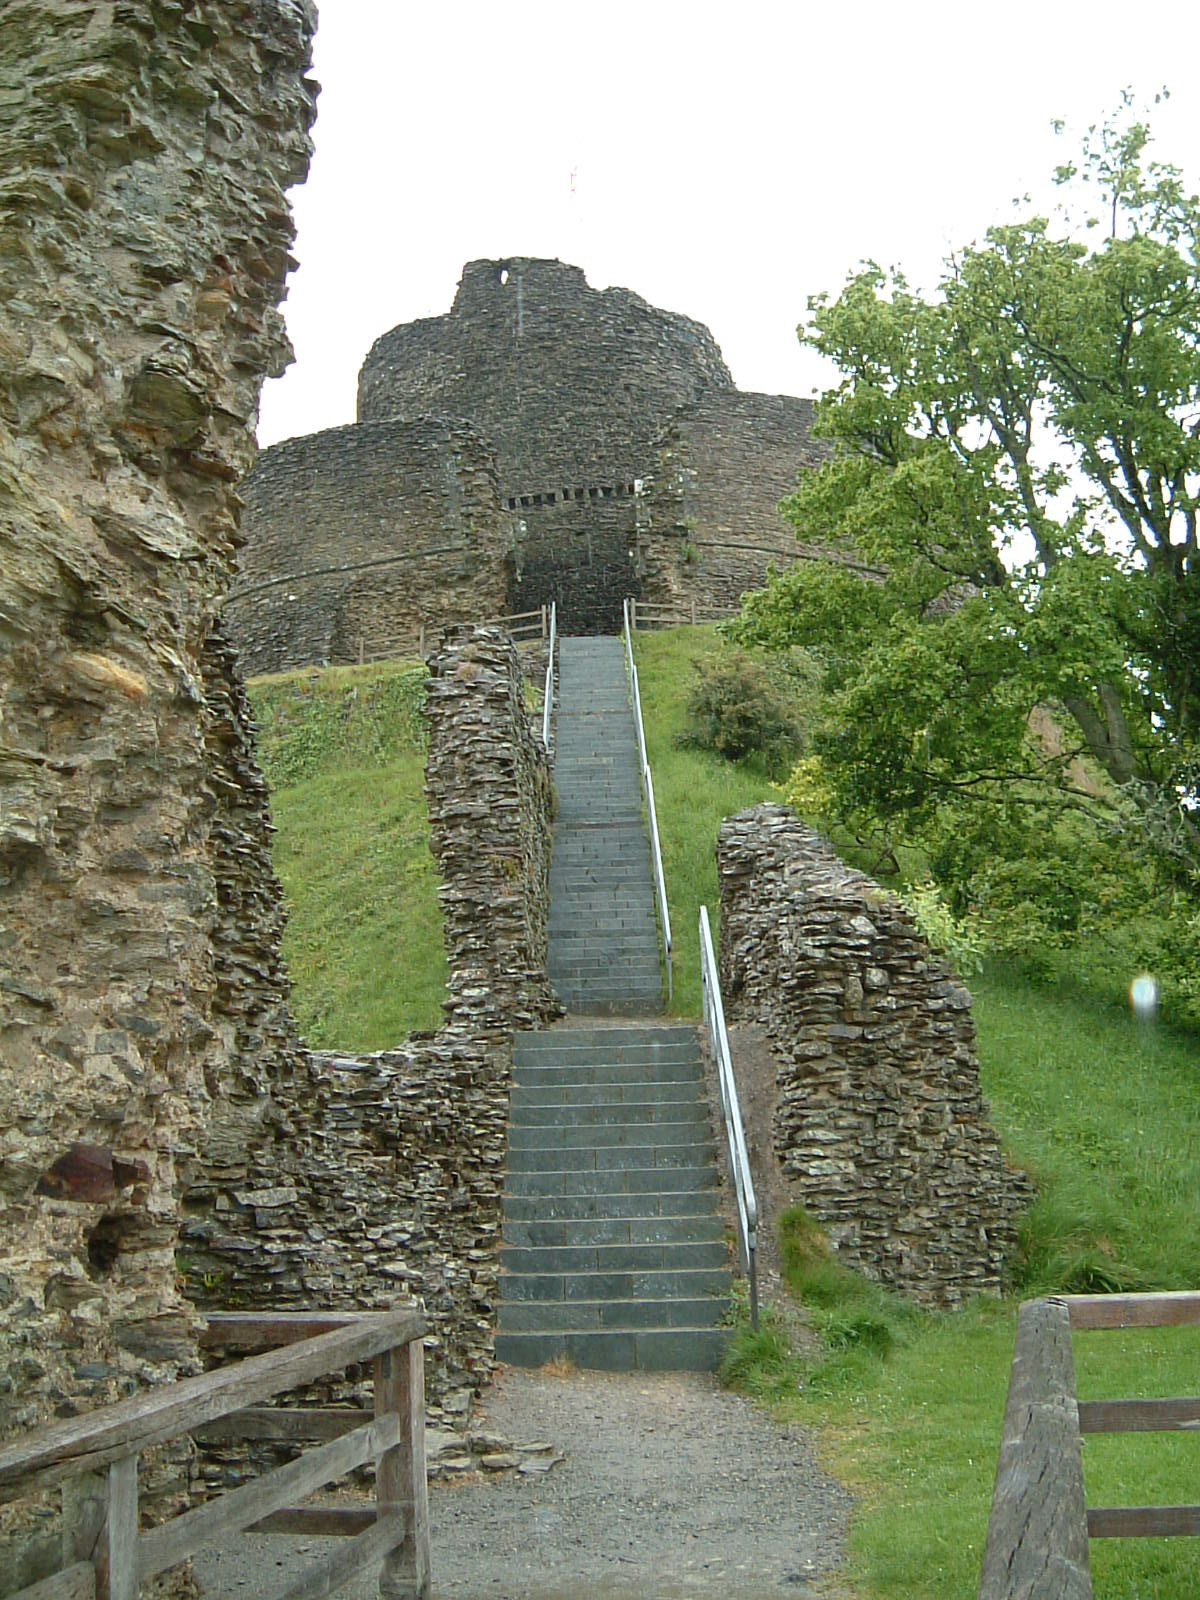 Looking up towards the keep of Launceston Castle